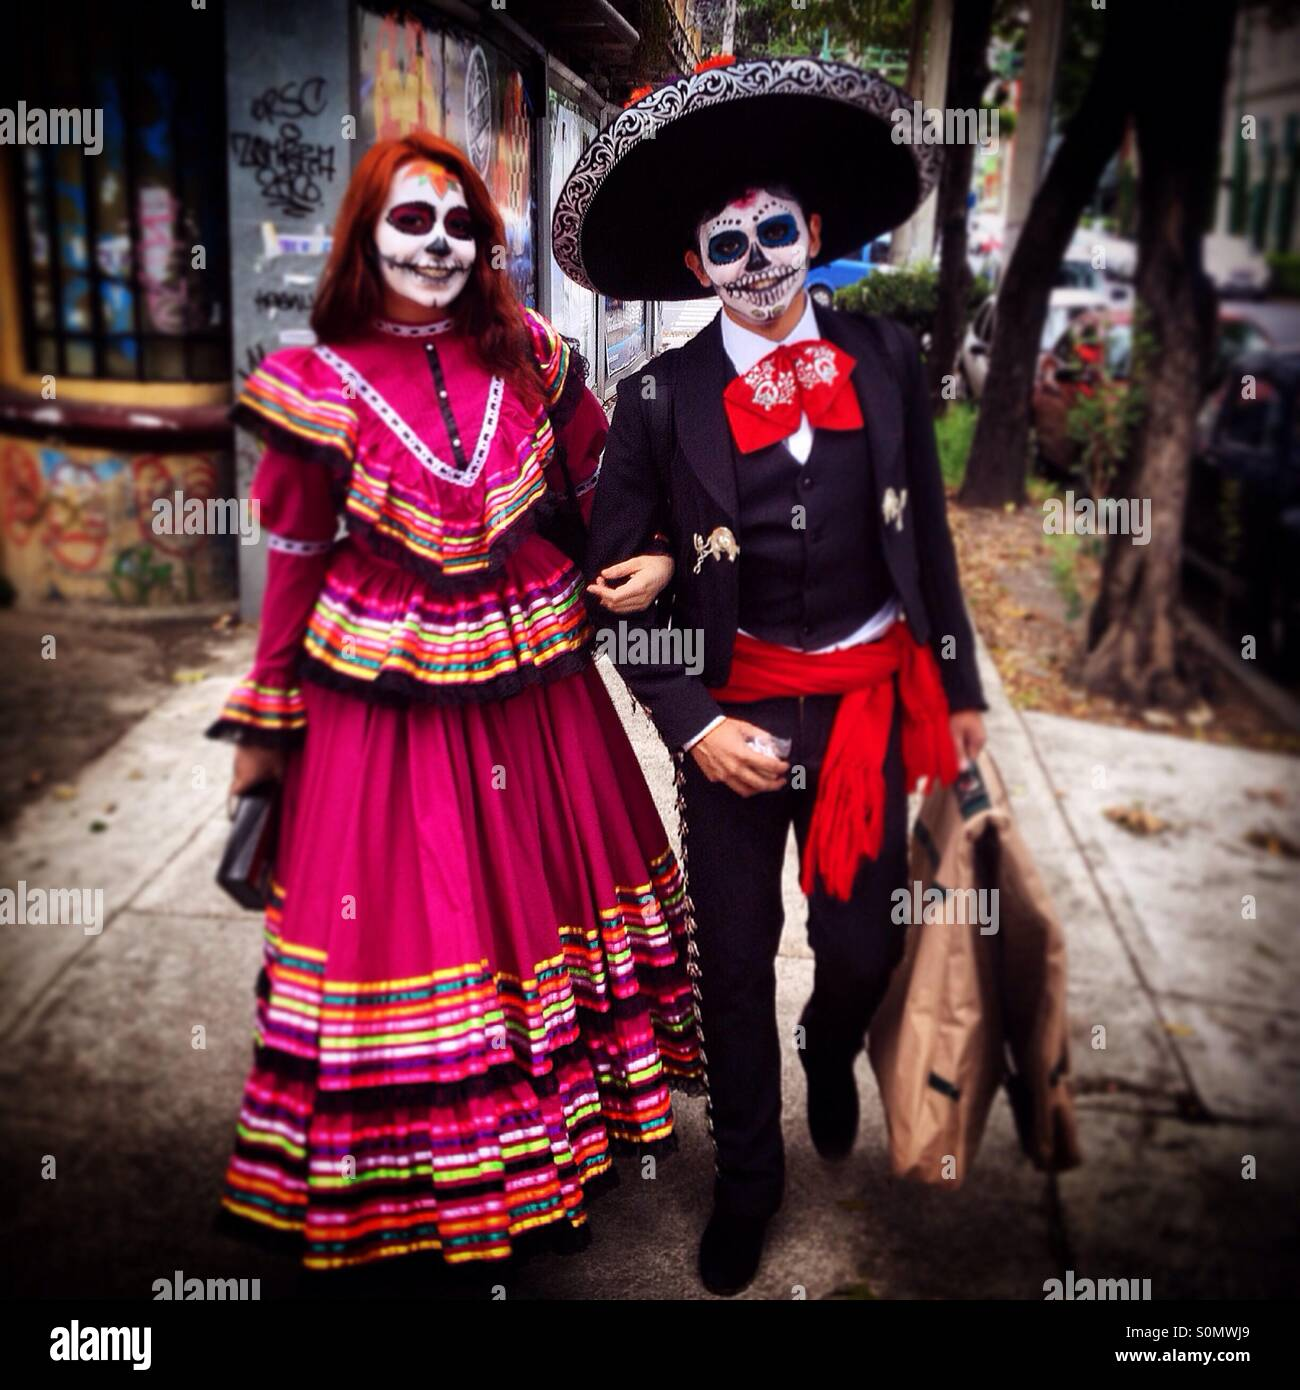 A couple of Mexicans dressed with traditional costumes for Day of the Dead celebrations walk in a street of Colonia Roma Mexico City Mexico  sc 1 st  Alamy : dead mariachi costume  - Germanpascual.Com